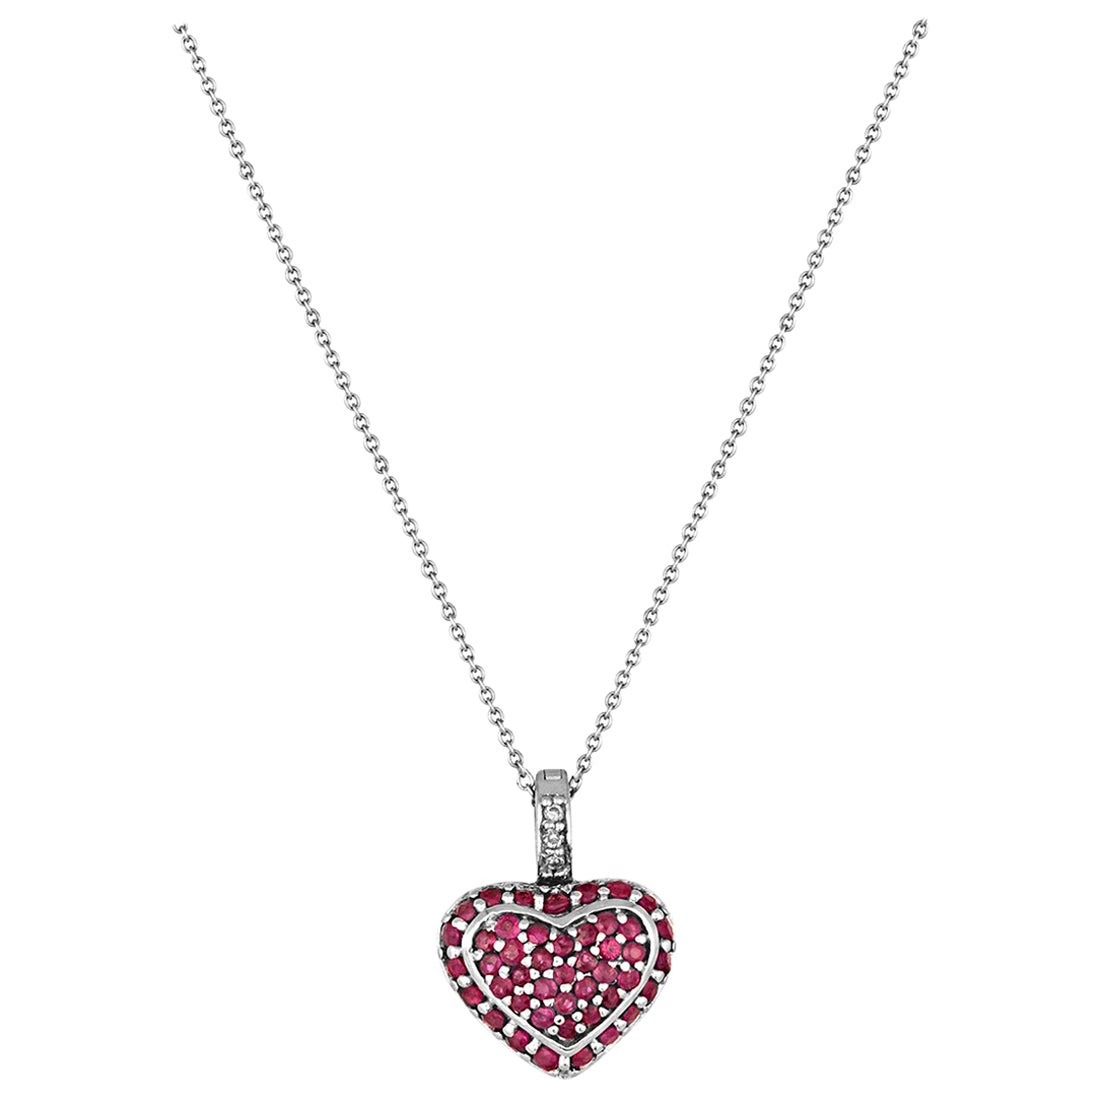 1.25 Carat Ruby And Diamond Gold Heart Pendant Necklace